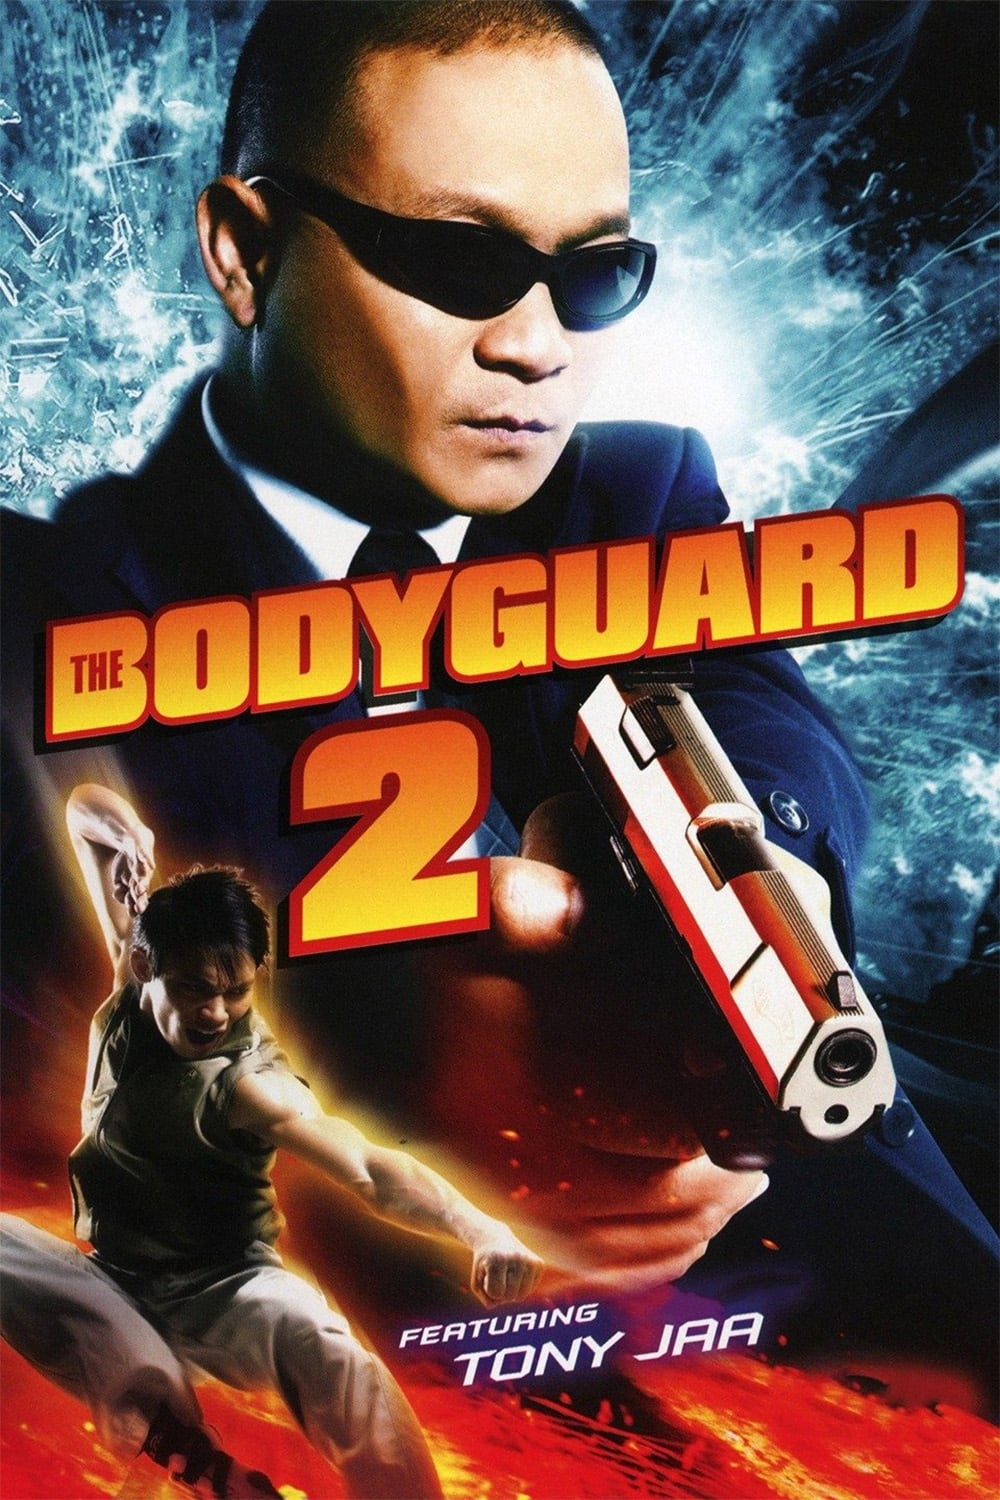 The Bodyguard 2 on FREECABLE TV